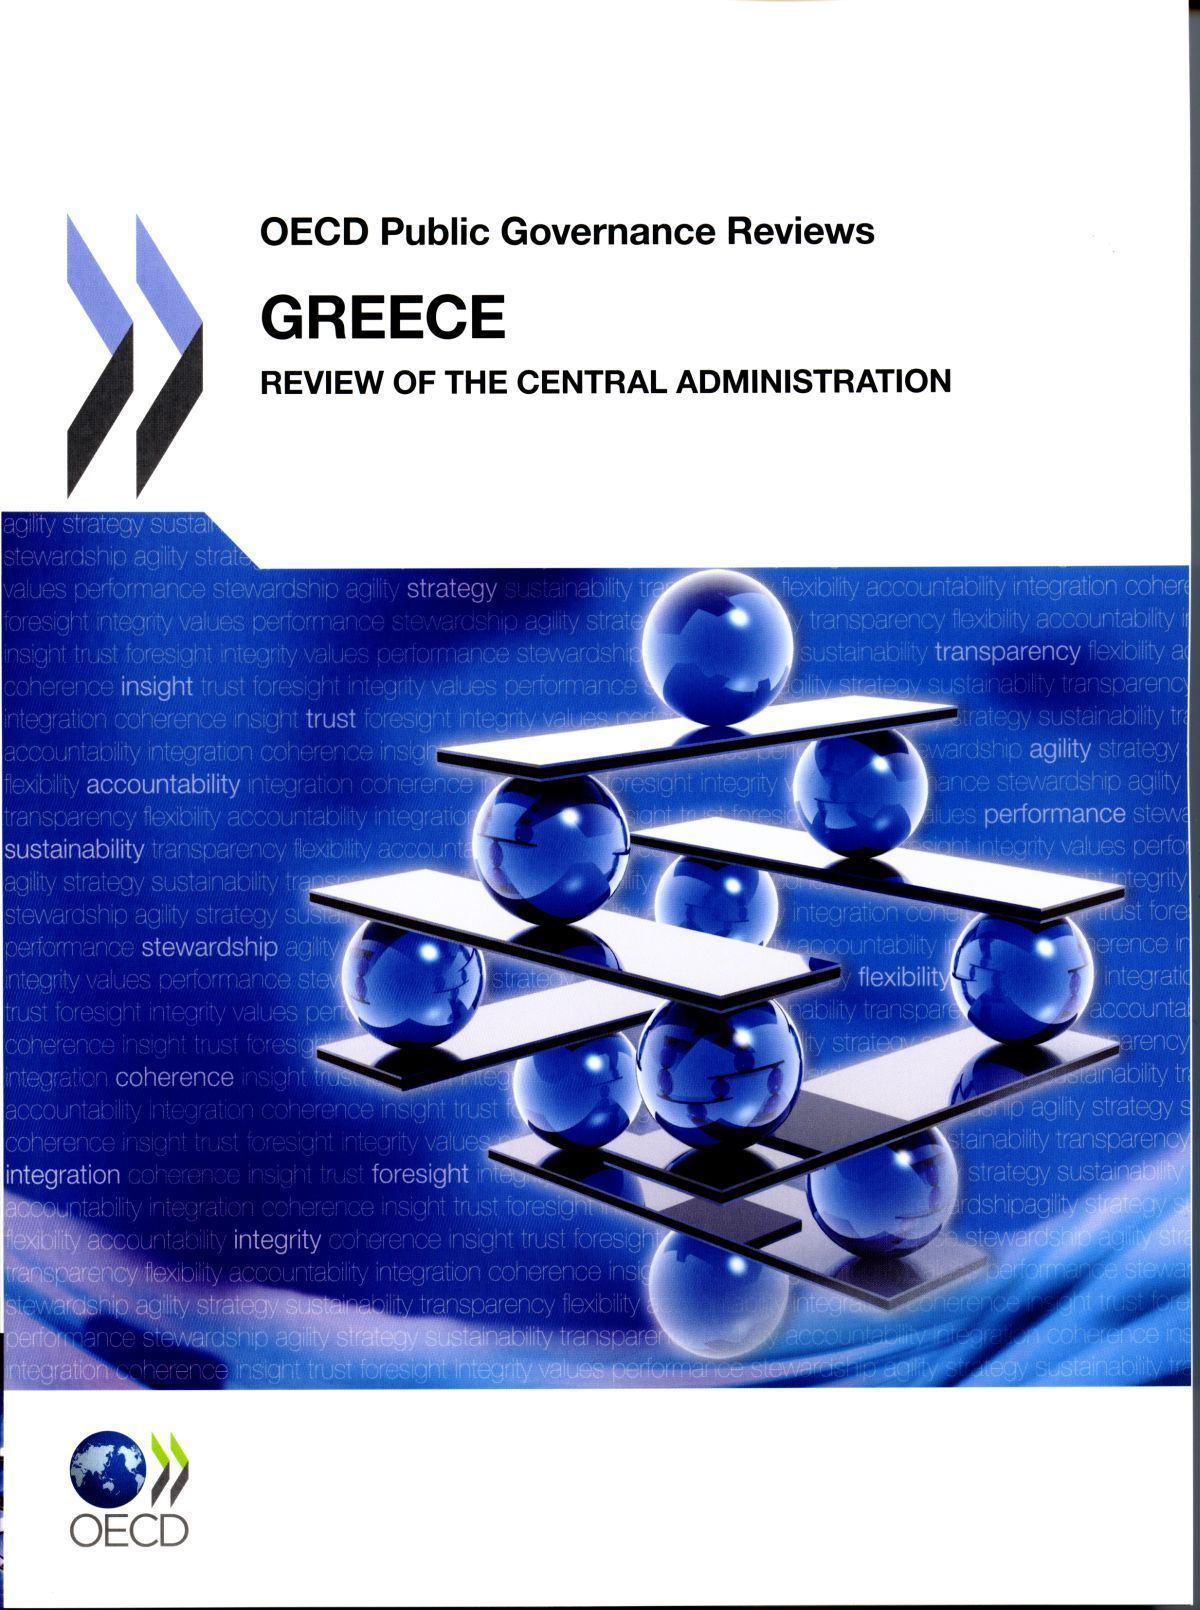 Greece: Review of the Central Administration